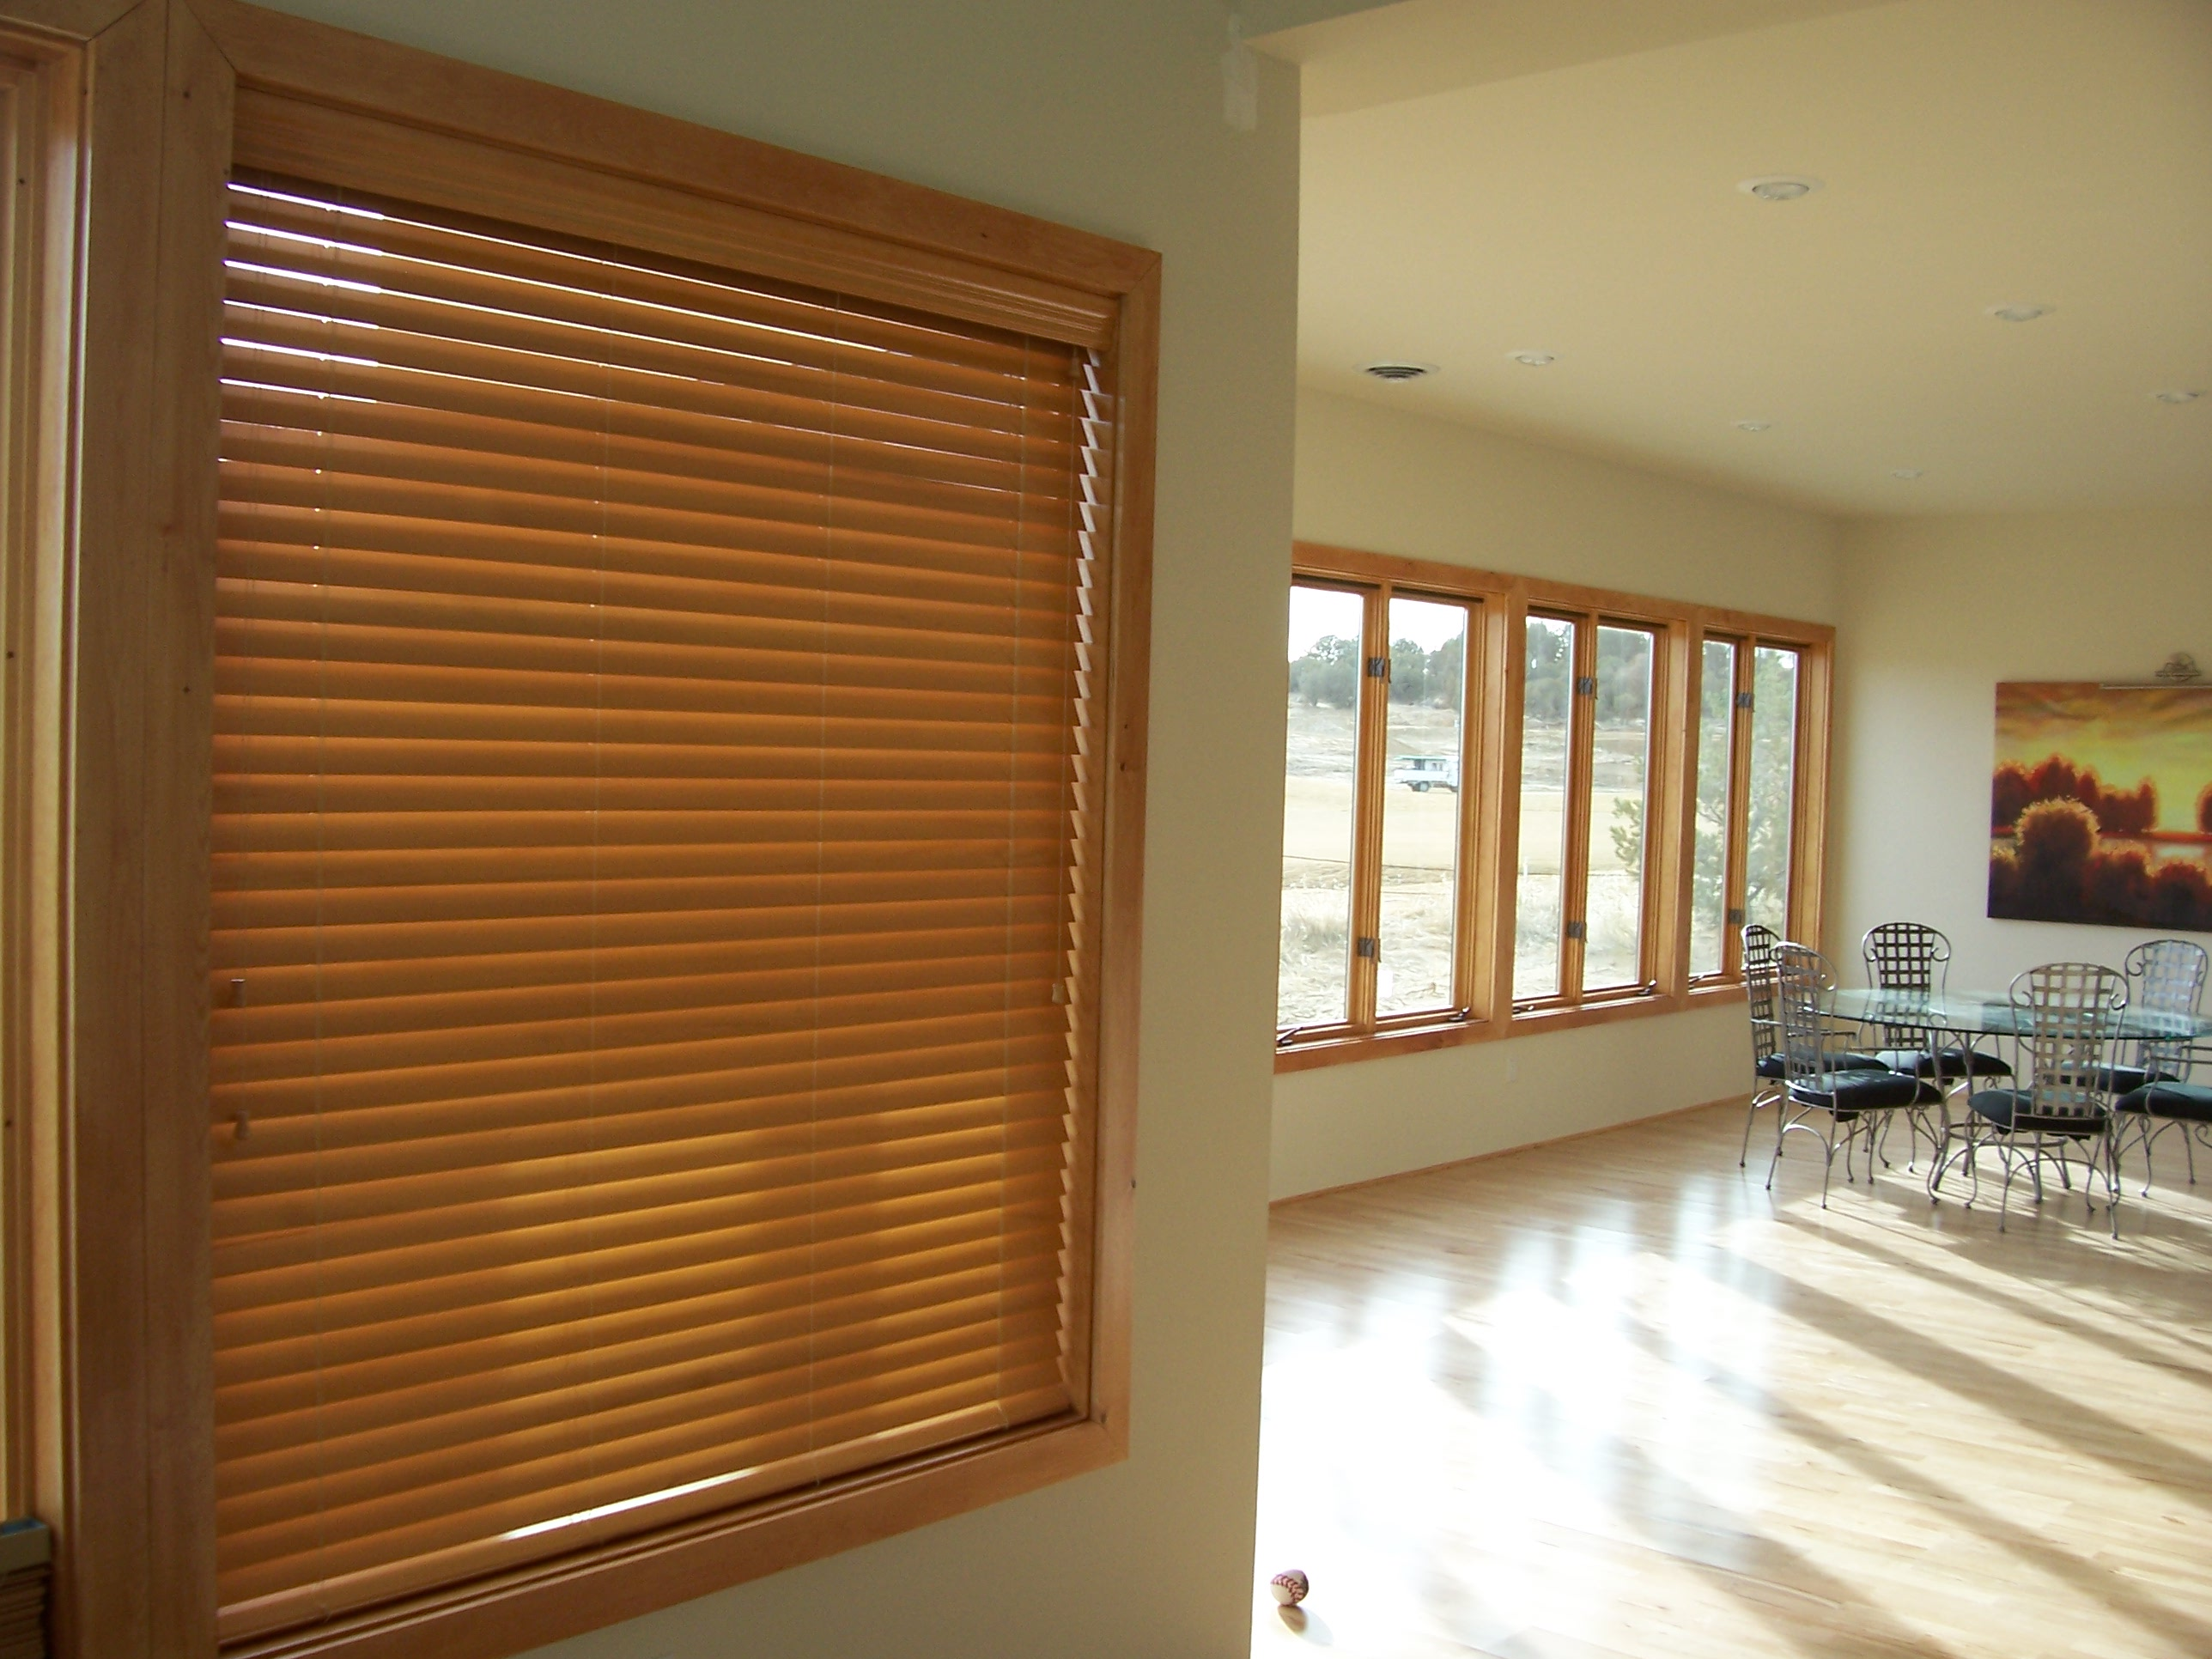 2008 view website budget blinds specializes in custom window blinds